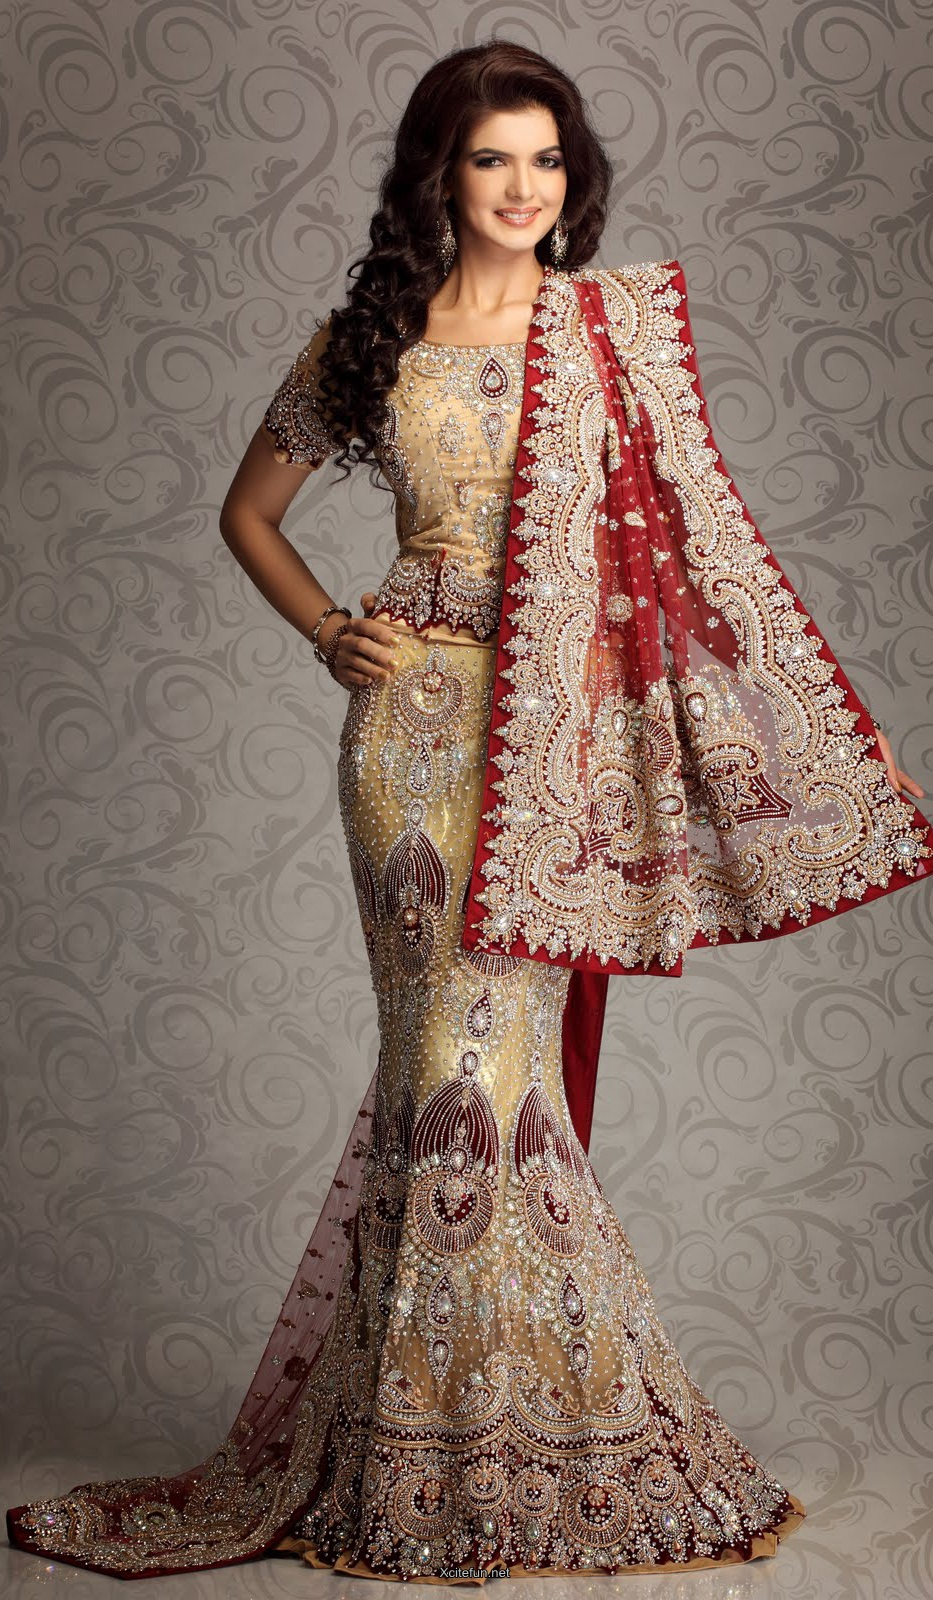 Bridal Lehnga Choli For Wedding 2014 Collection Xcitefun Net